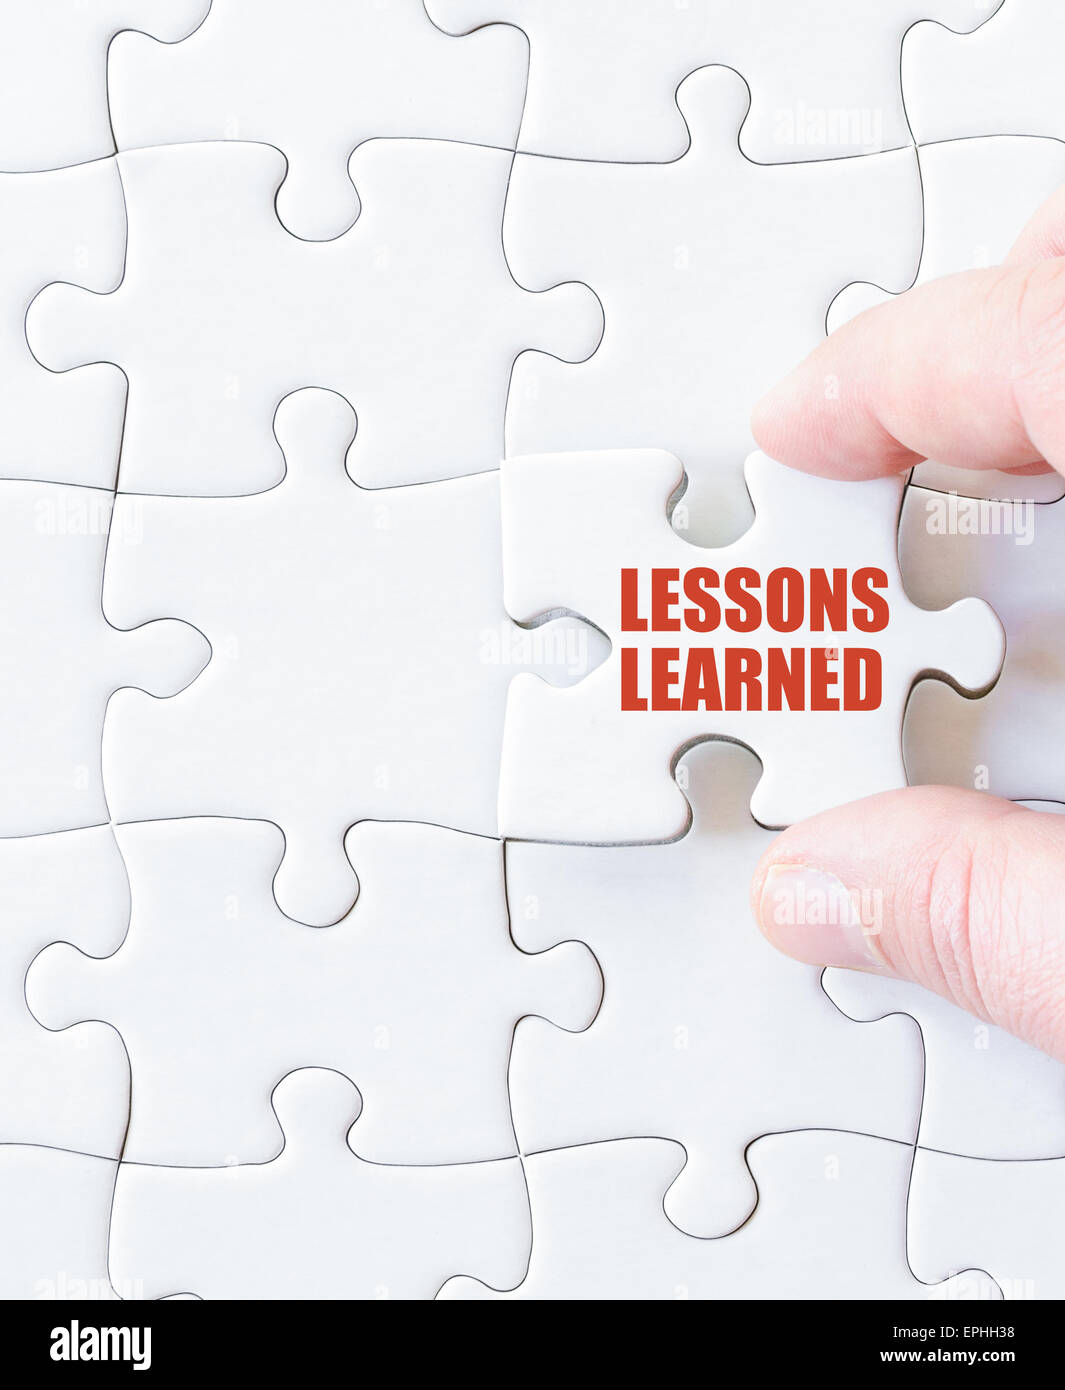 Missing jigsaw puzzle piece with words LESSONS LEARNED. Business concept image for completing the puzzle. - Stock Image